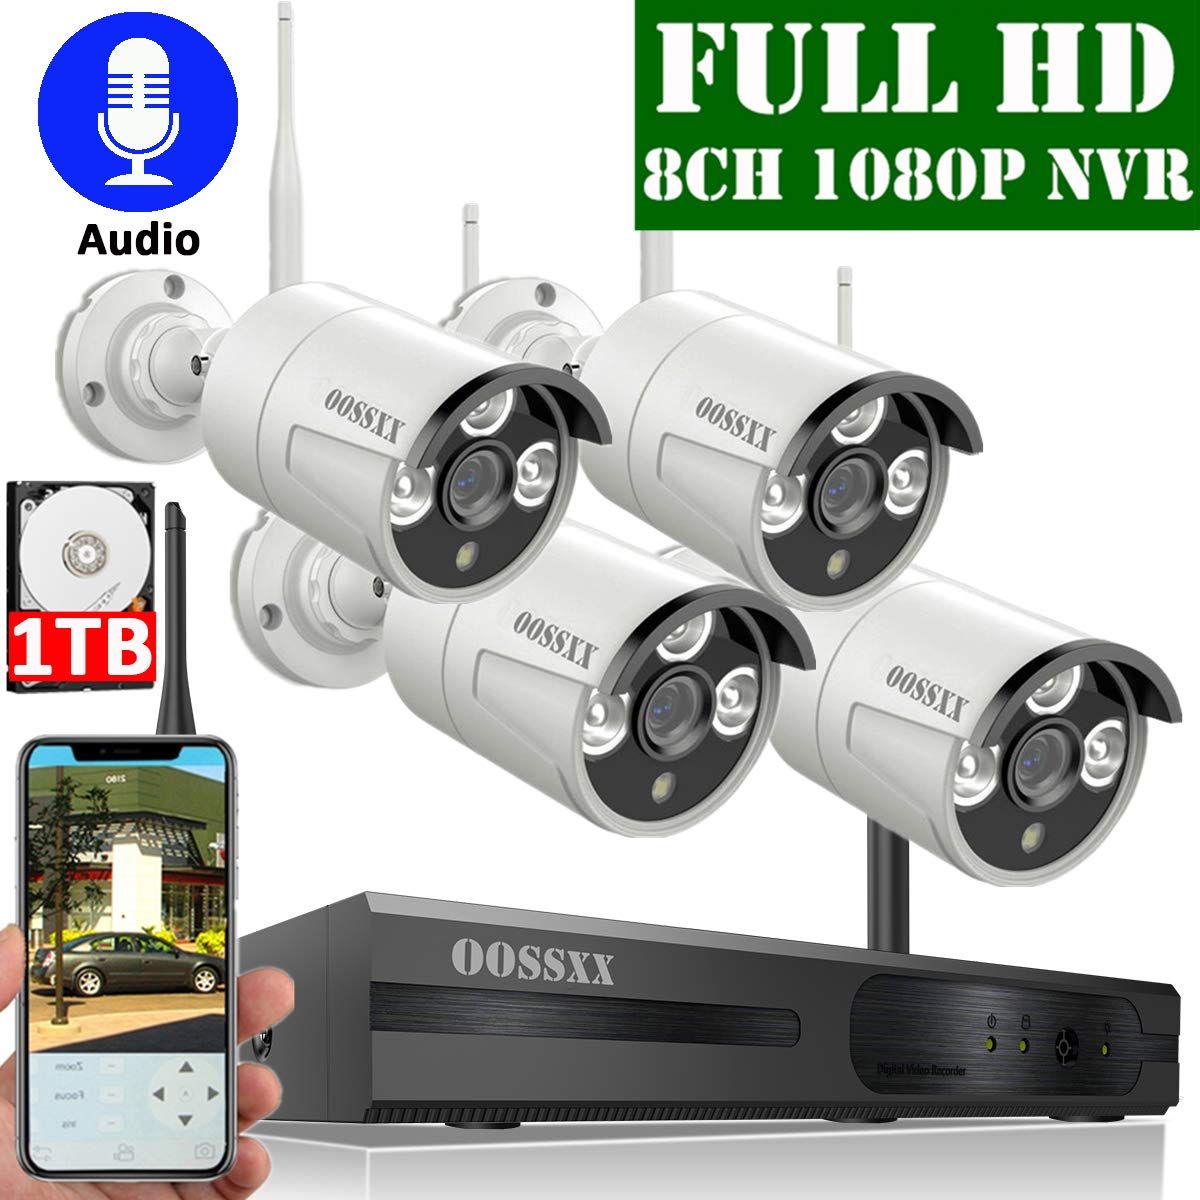 【2020 Update】 OOSSXX 8-Channel HD 1080P Wireless Security Camera System,4Pcs 1080P 2.0 Megapixel Wireless Indoor/Outdoor IR Bullet IP Cameras with Audio,1TB HDD Pre-Install